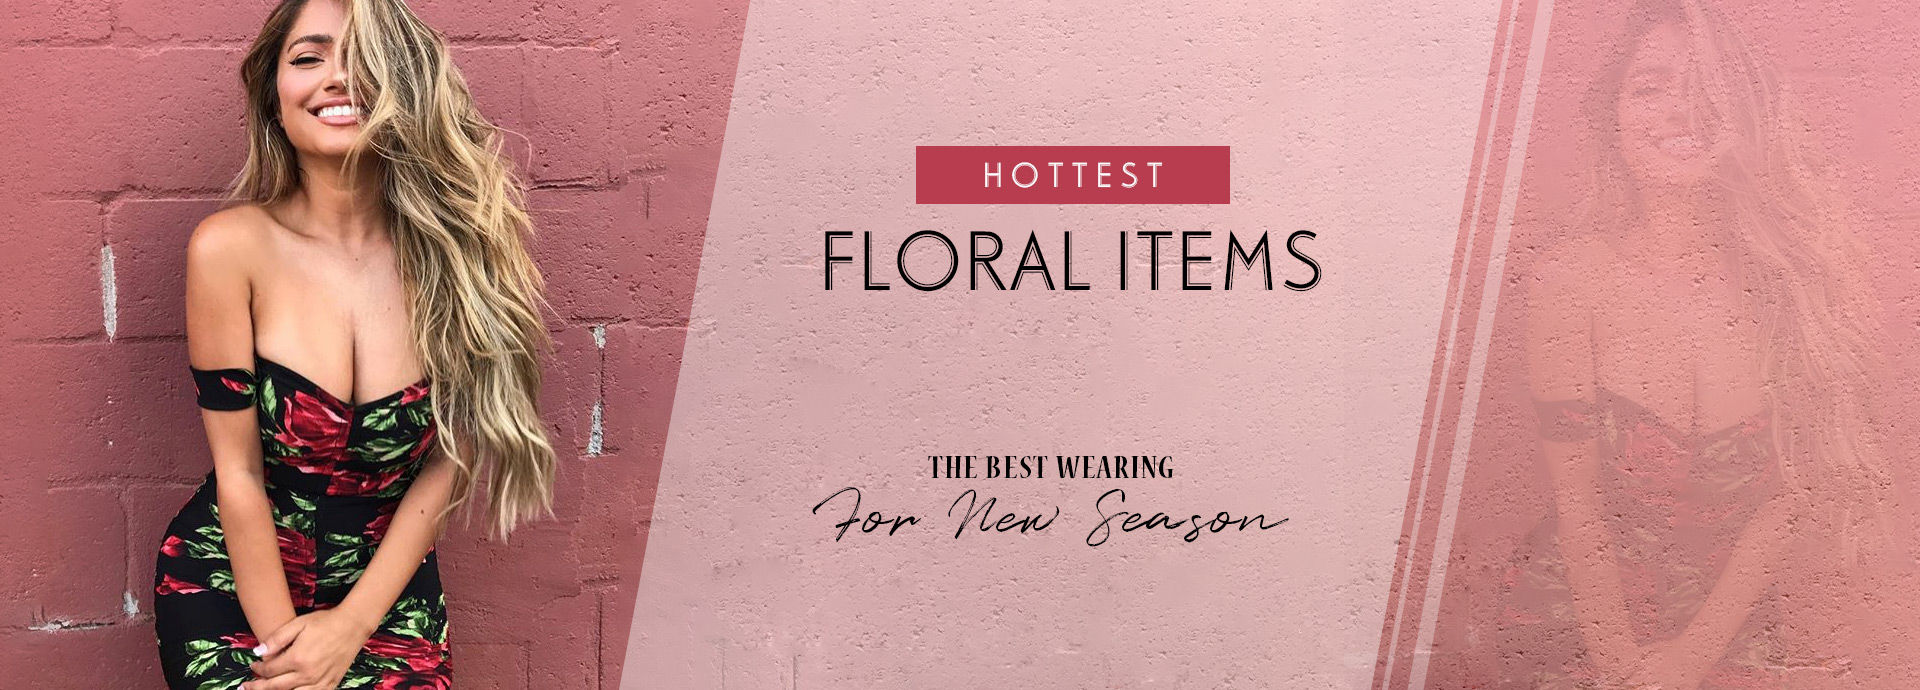 Hottest Floral Items